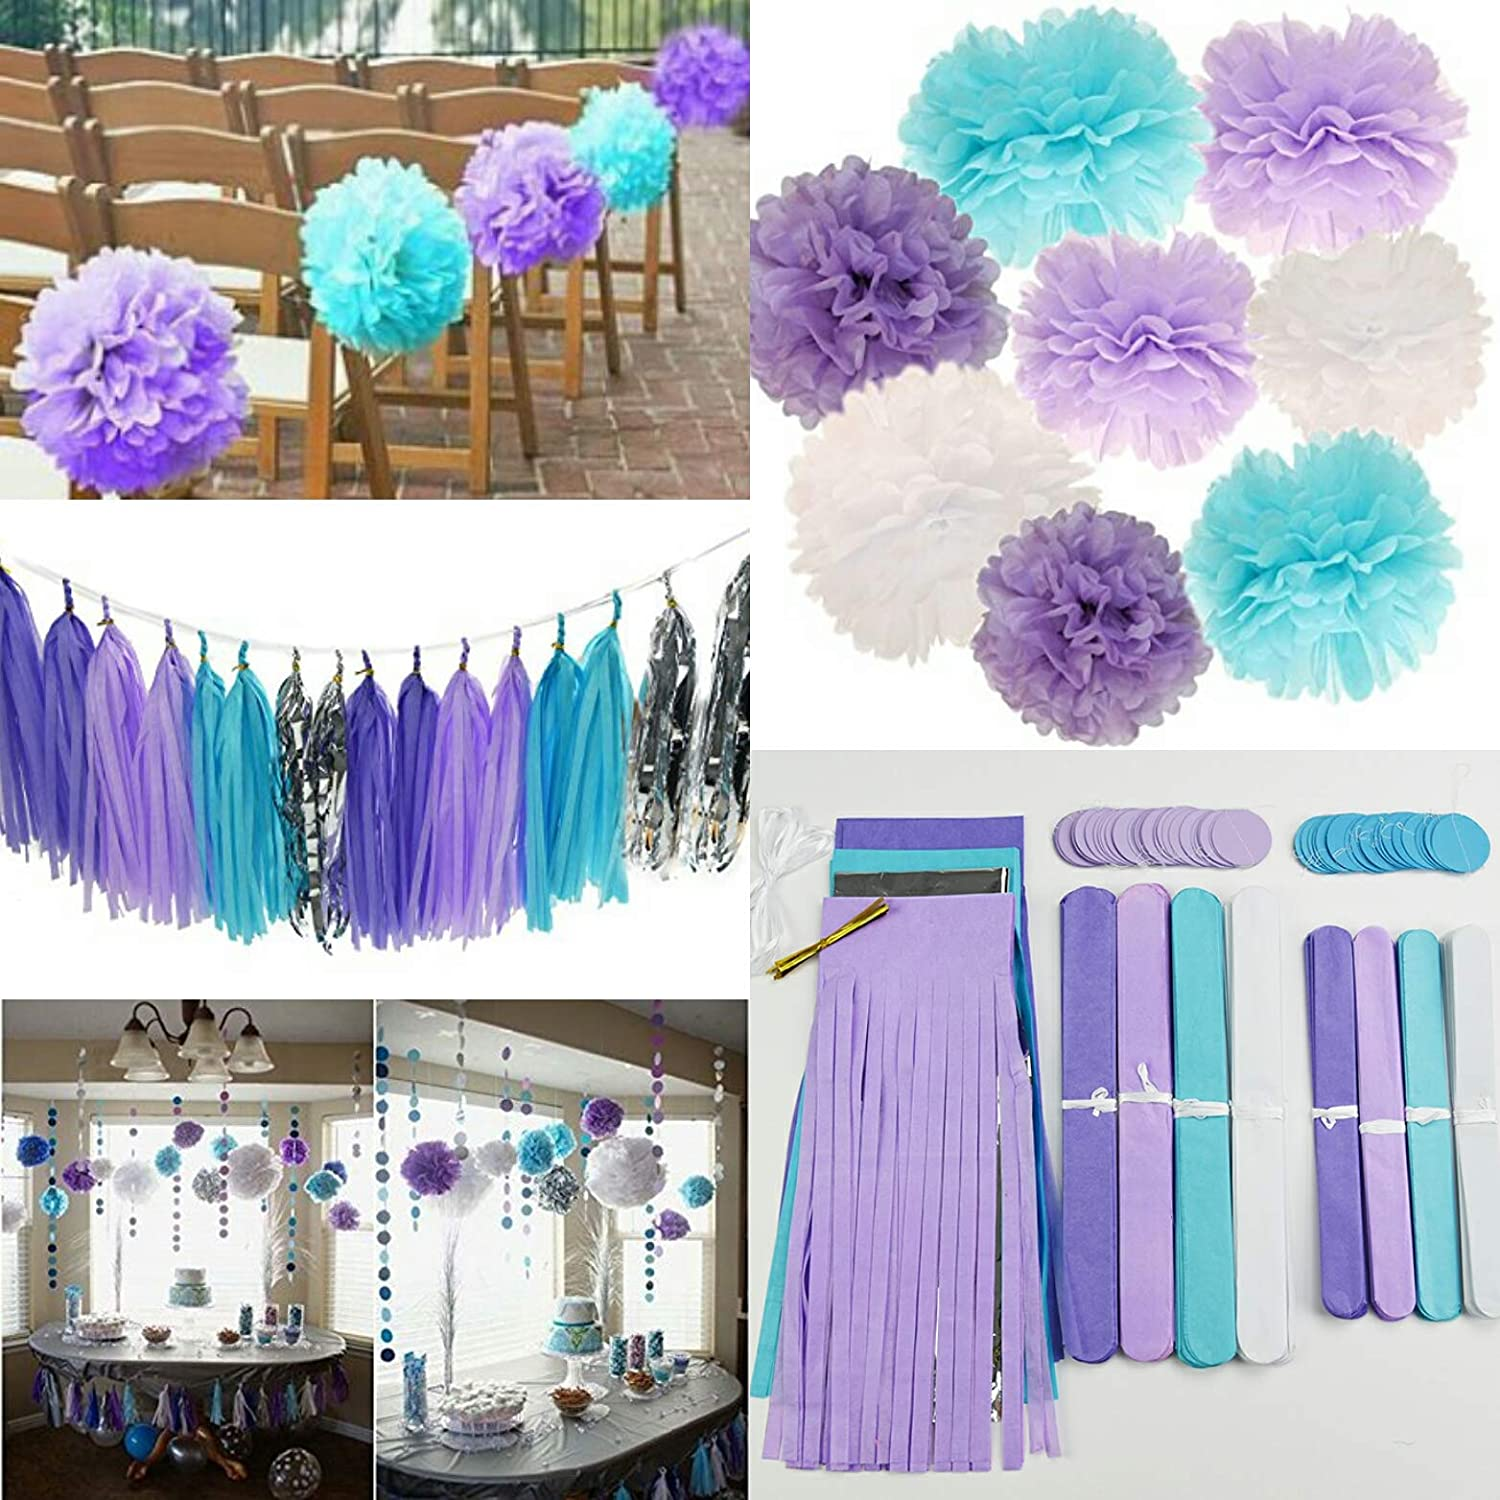 Mermaid Baby Shower Decorations Aqua Blue Teal Purple Tissue Paper Fan Summer Party